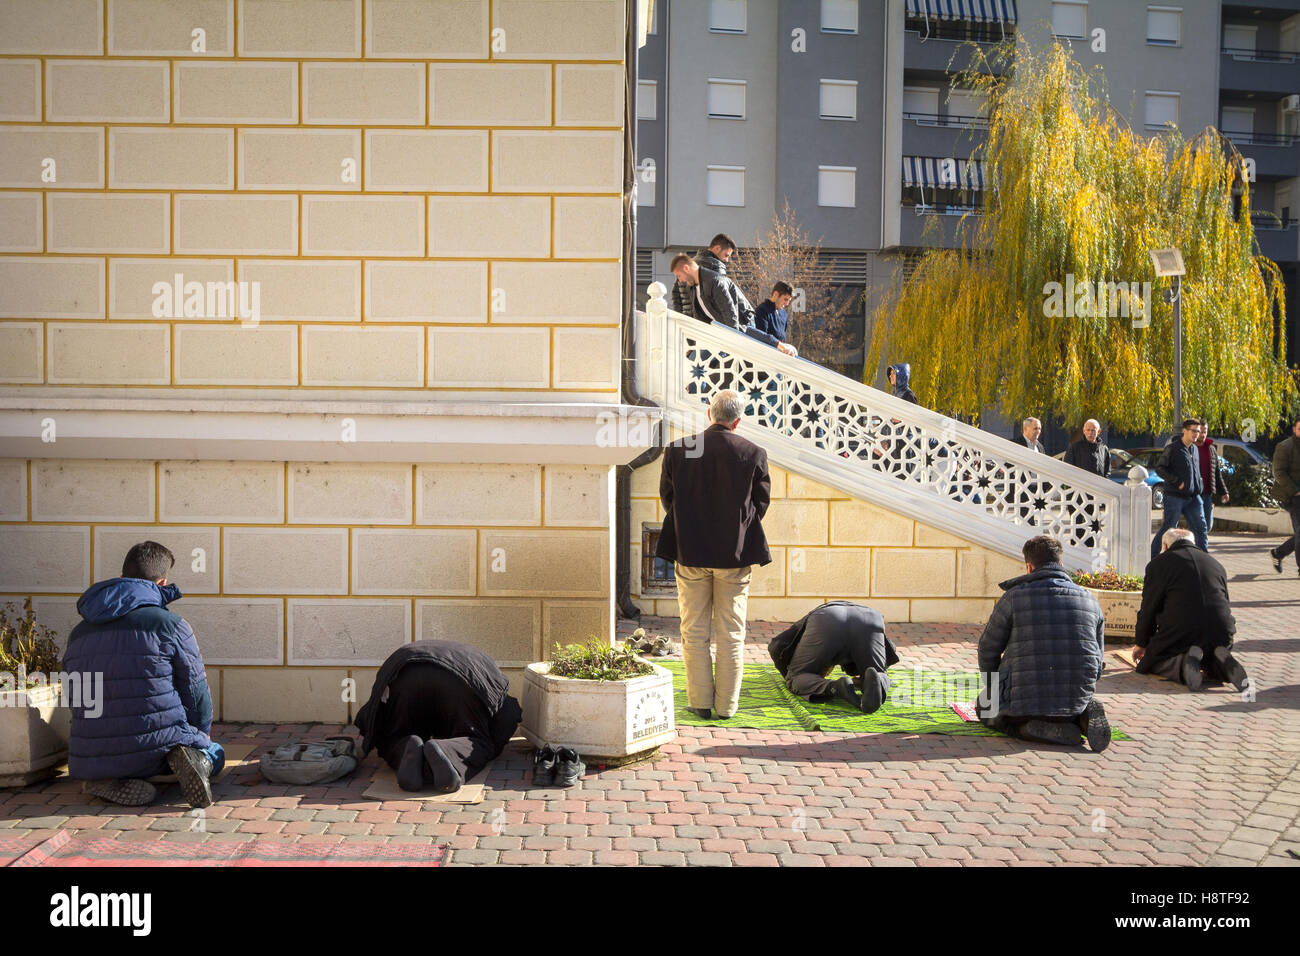 Kosovo Albanian muslims praying in front of the Isa Beg Mosque in Mitrovica, Kosovo - Stock Image